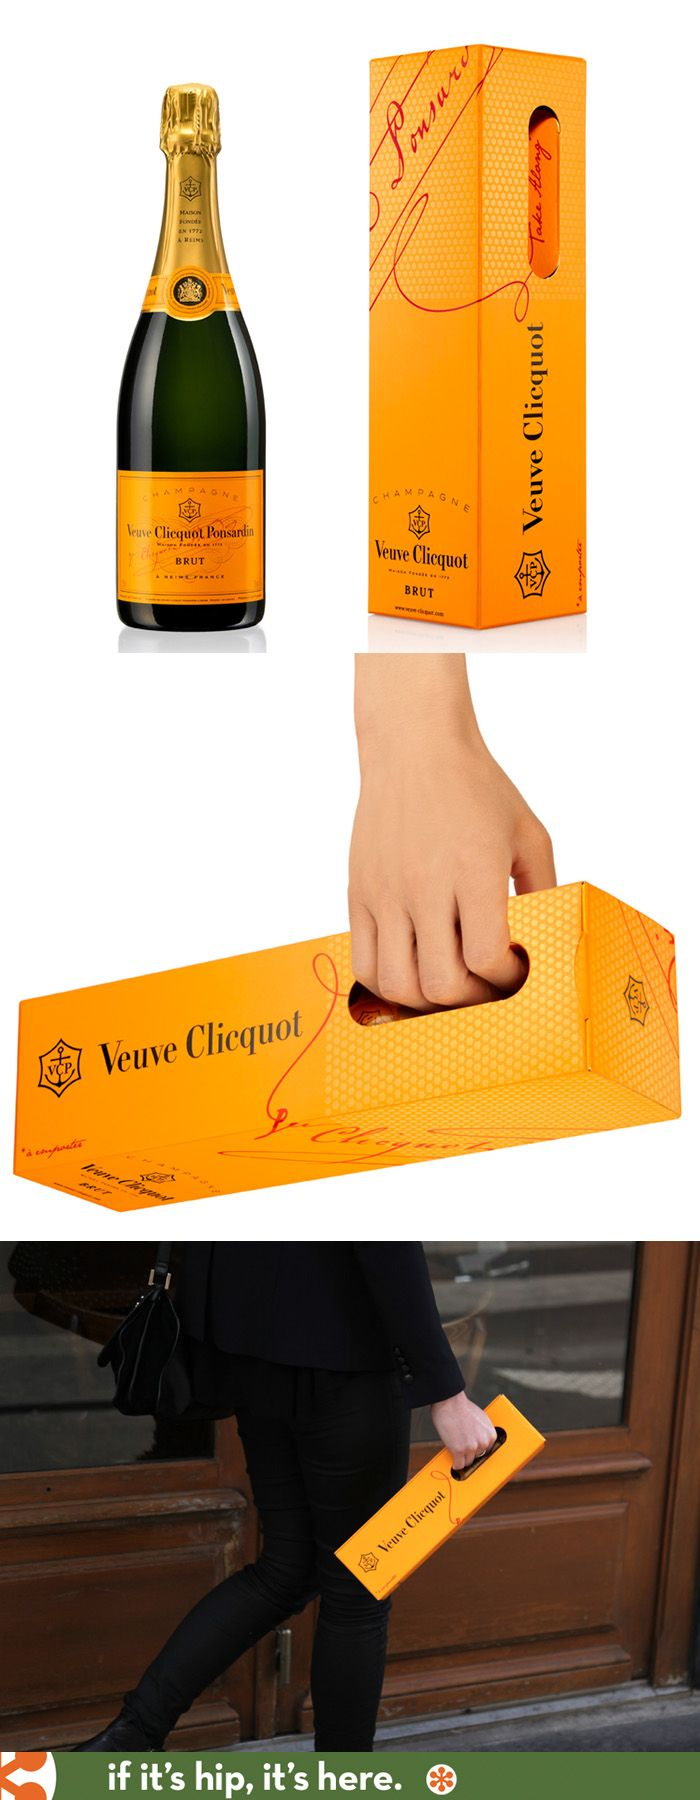 "Veuve Clicquot ""Take Along"" package design by 5.5 Designers"